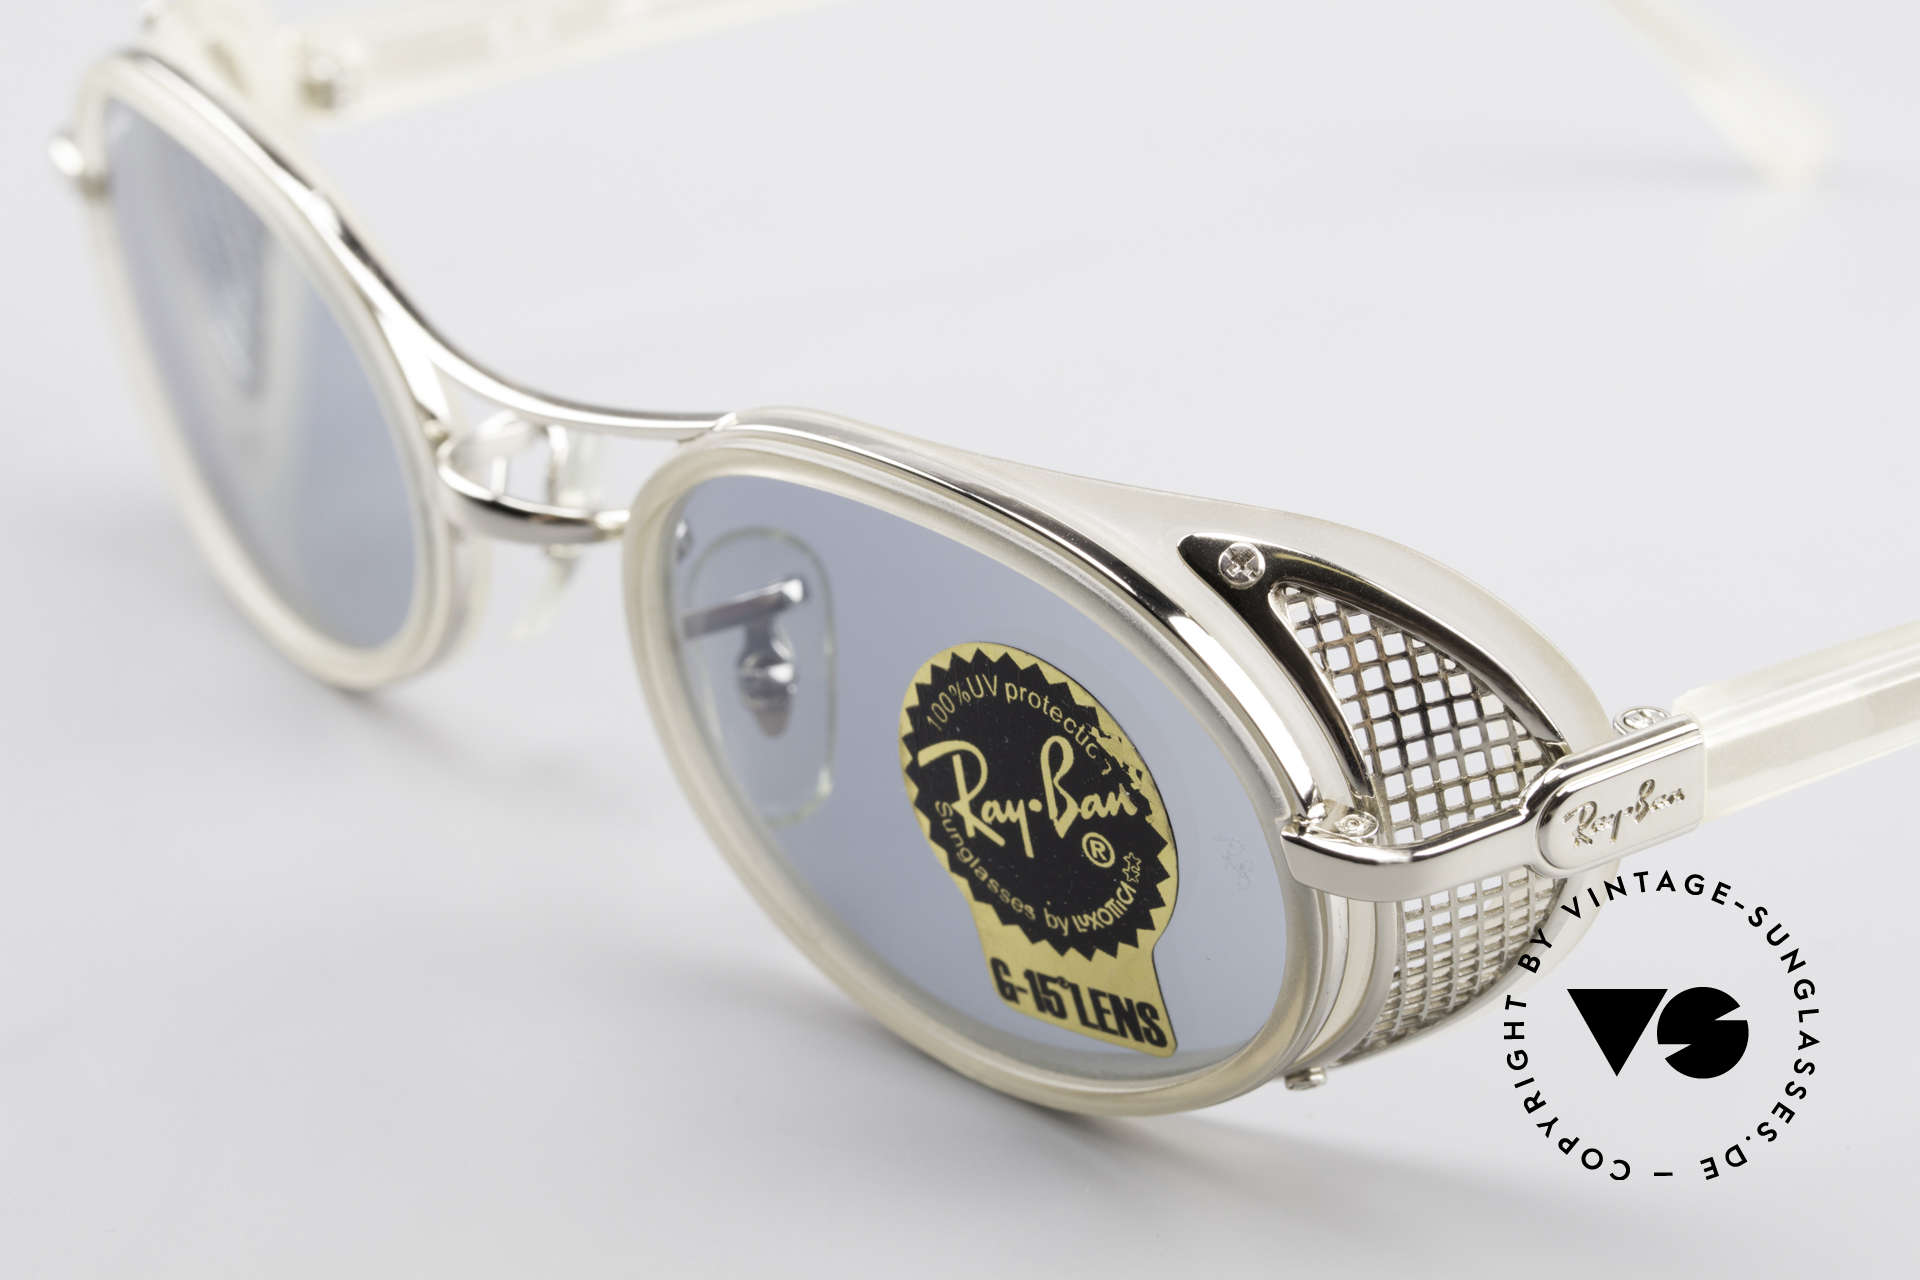 Ray Ban Chaos RB3140 Steampunk Industrial Shades, very special shades, since a piece of economic history, Made for Men and Women